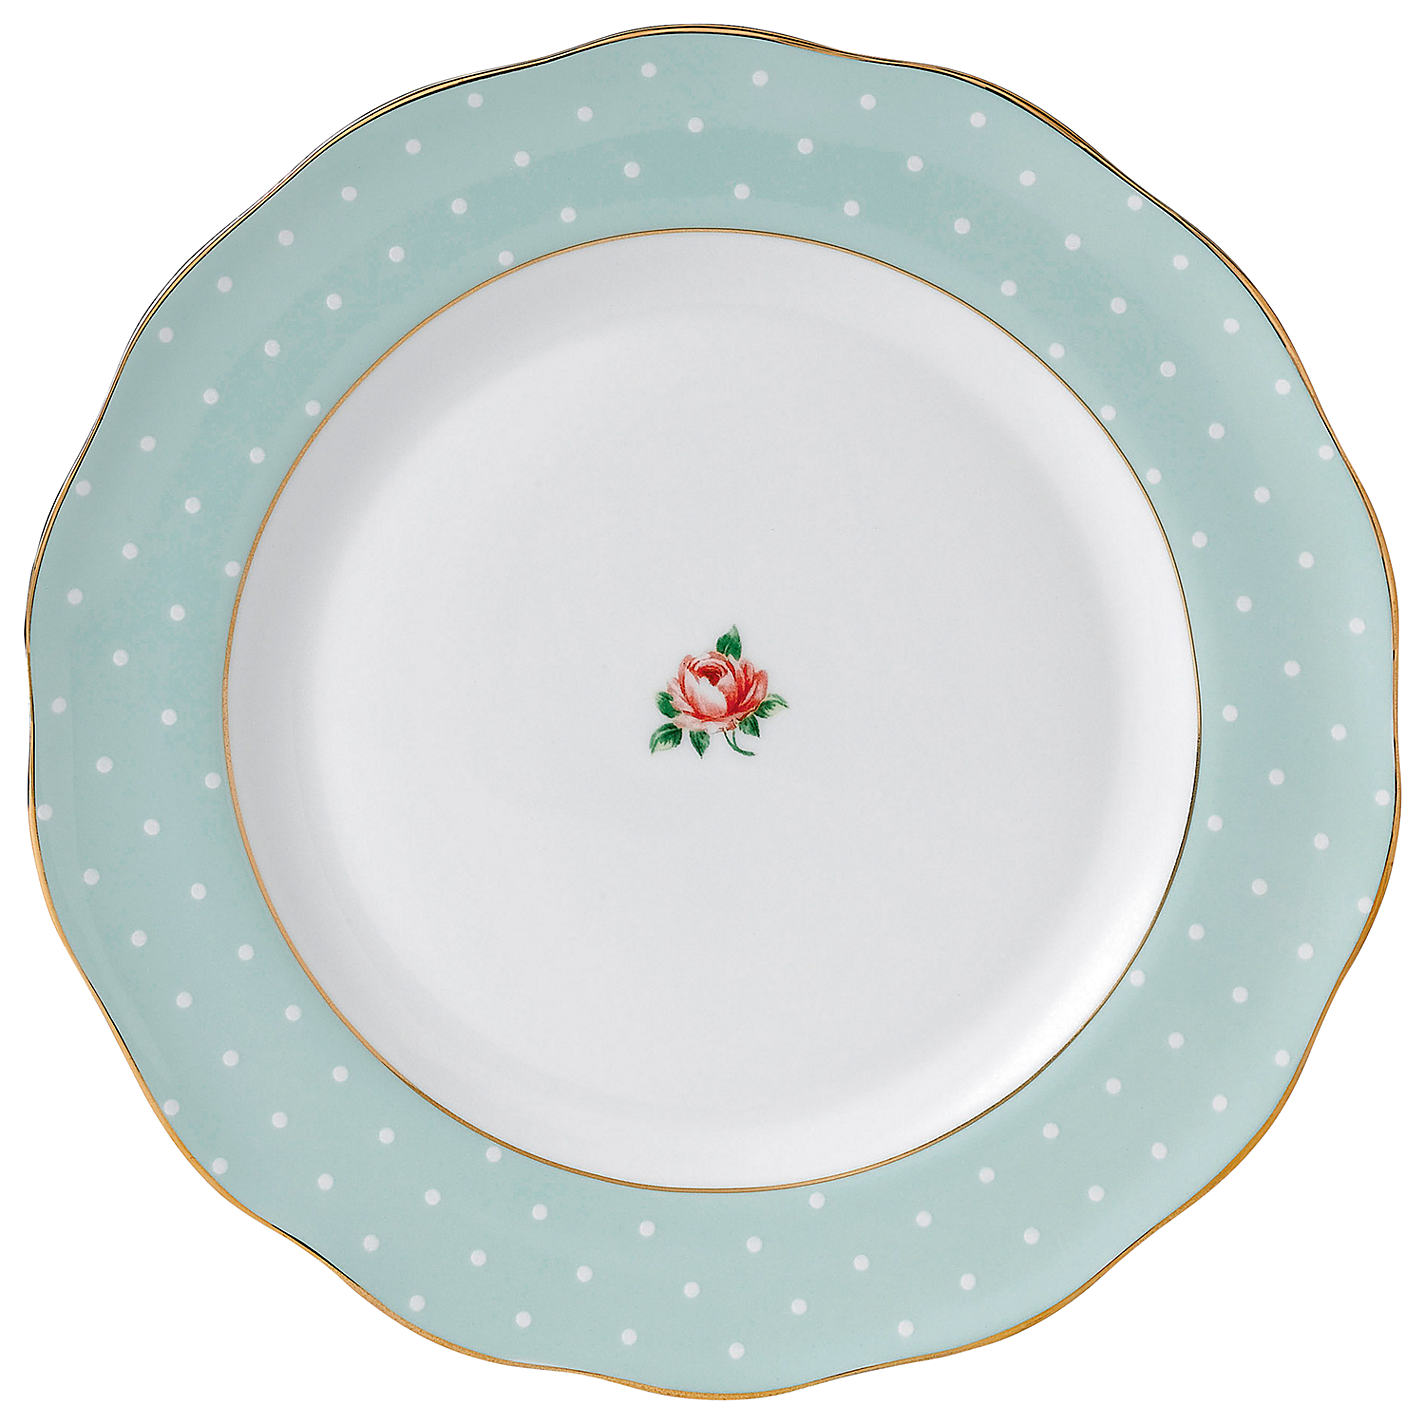 Shop for Plates | John Lewis